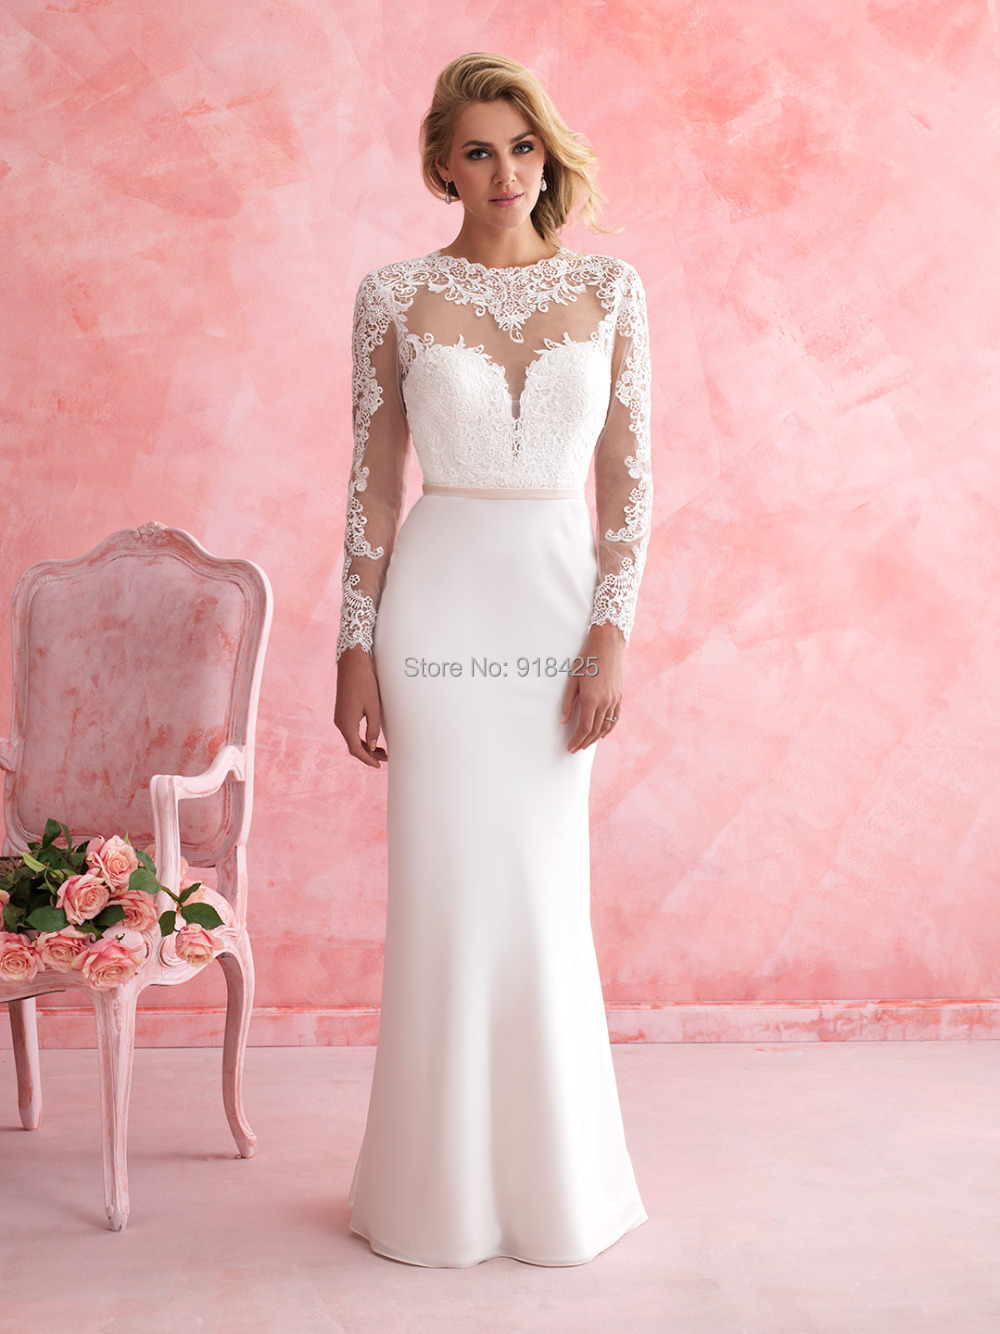 New fashion high neck sheath long sleeves bridal gown wedding new fashion high neck sheath long sleeves bridal gown wedding reception dresses sexy illusion vestidos de noiva mg297 in wedding dresses from weddings junglespirit Image collections